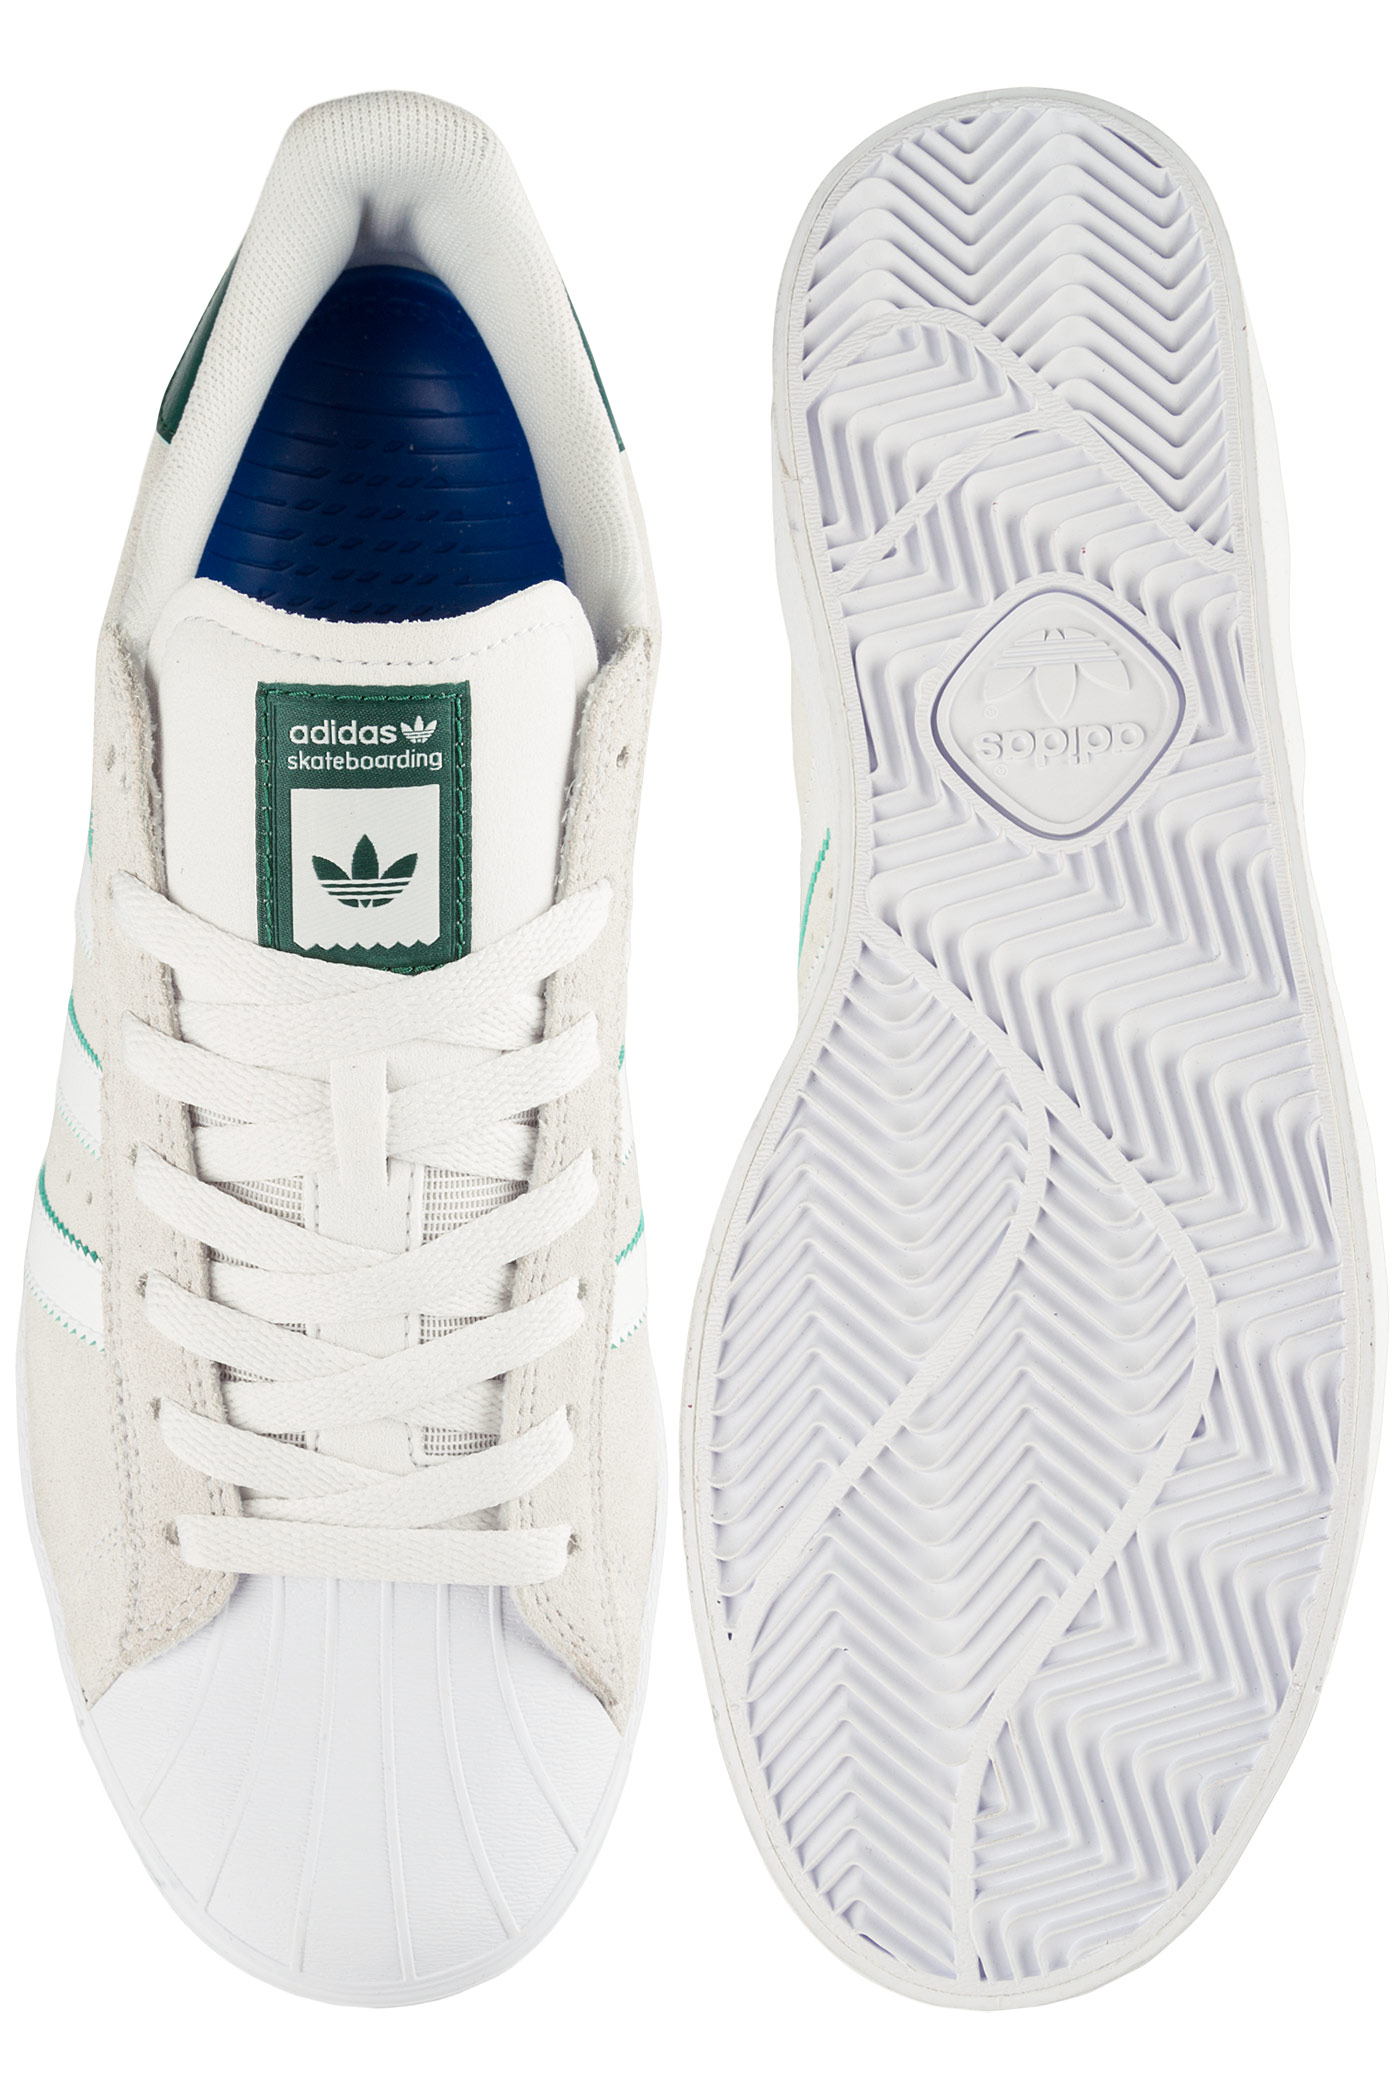 adidas Superstar Vulc ADV Shoes (crystal white white) buy at skatedeluxe 80d9ff4001